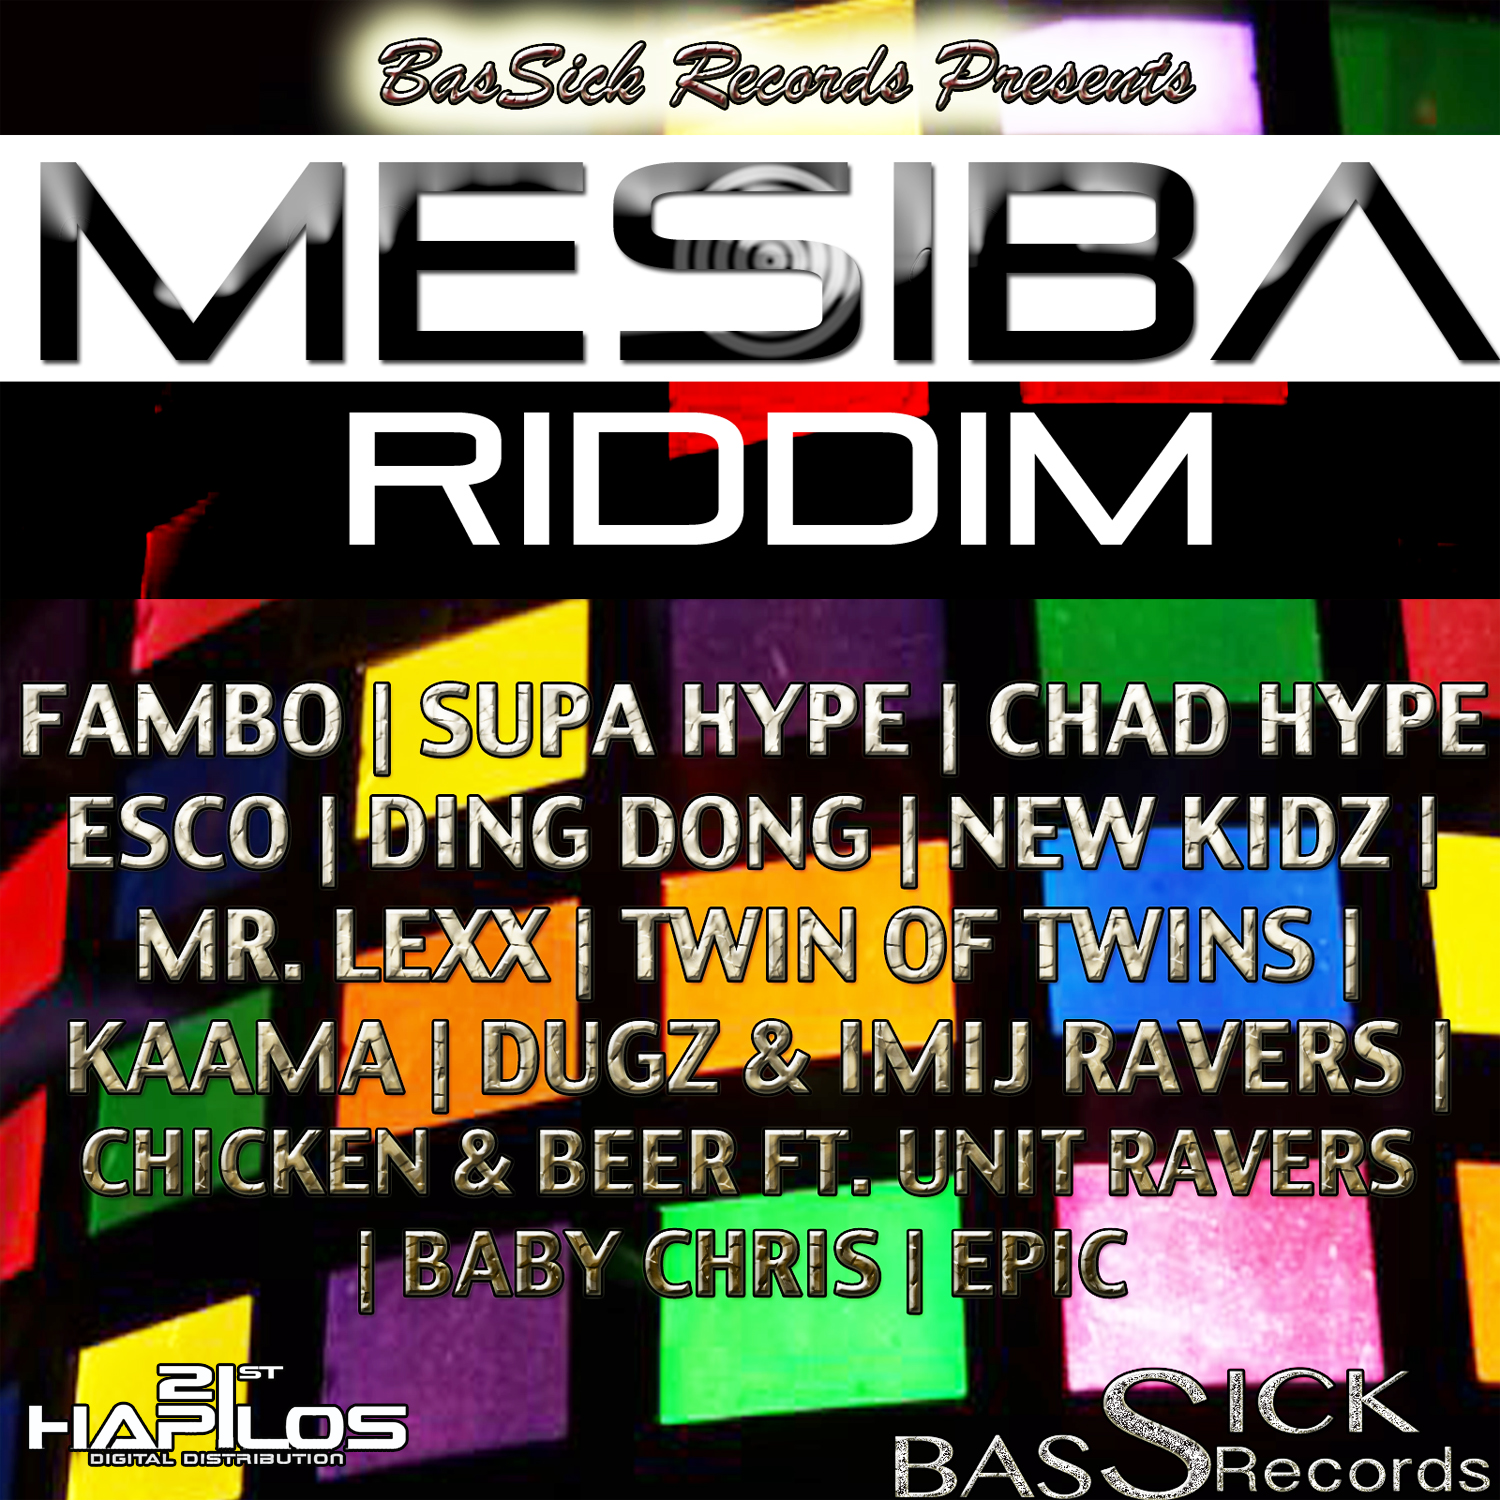 TWIN OF TWINS – MUCH CLEANER – MESIBA RIDDIM – BASSICK RECORDS